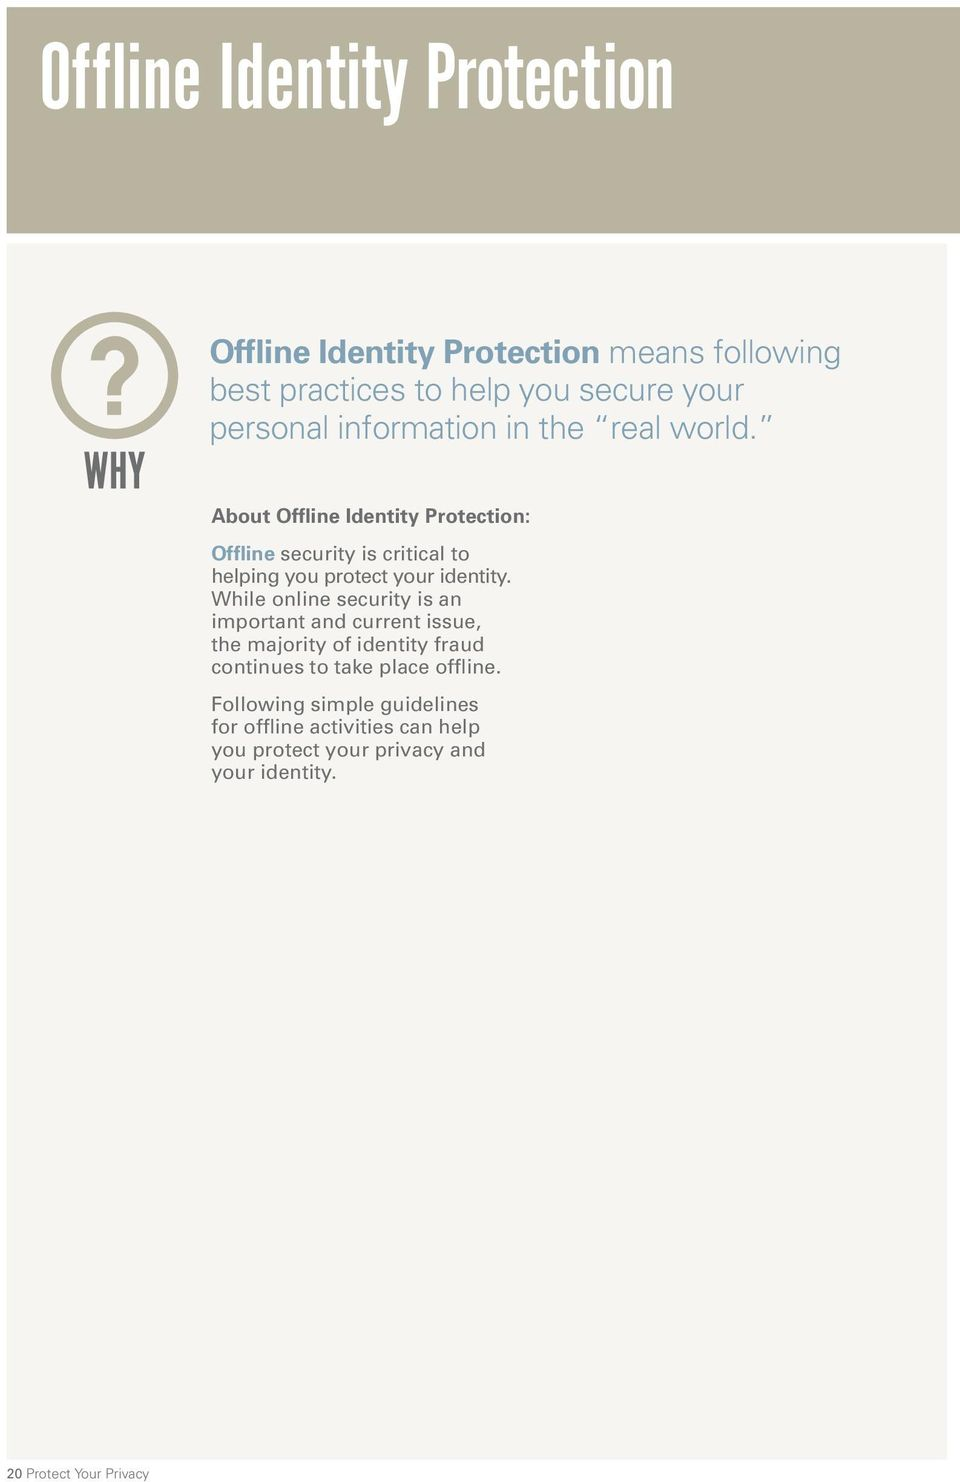 About Offline Identity Protection: Offline security is critical to helping you protect your identity.